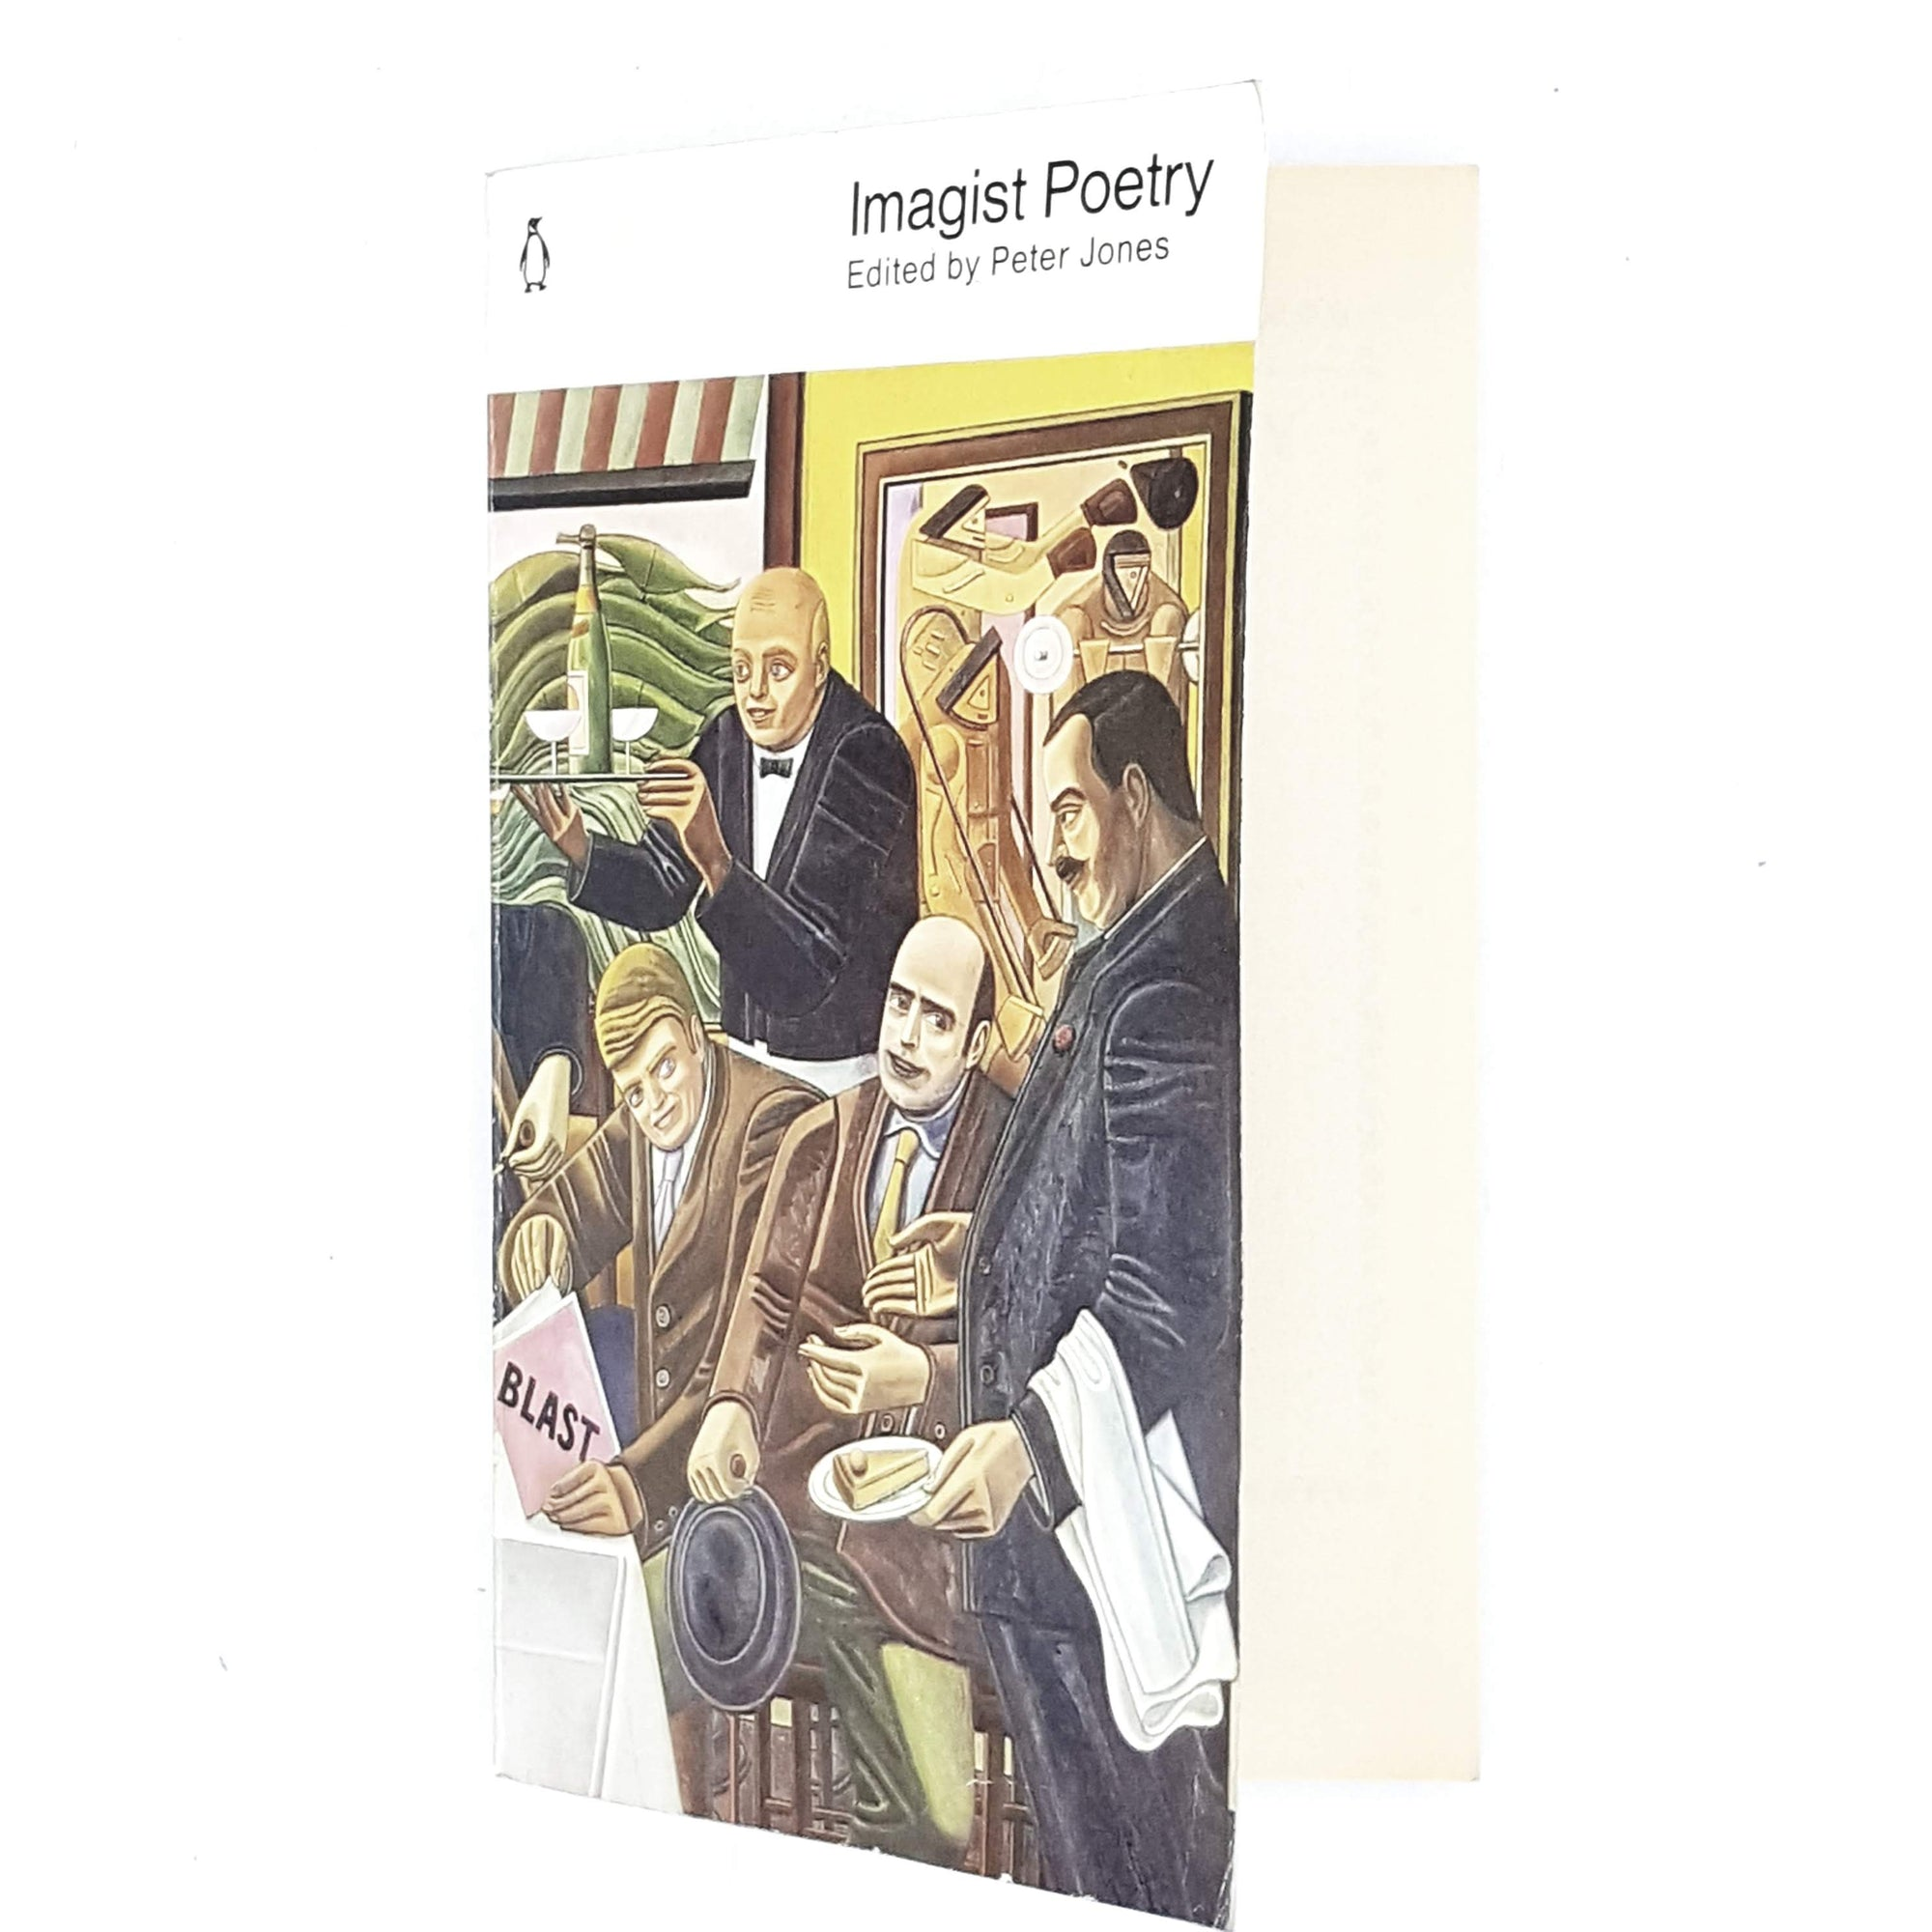 Vintage Penguin Imagist Poetry 1976